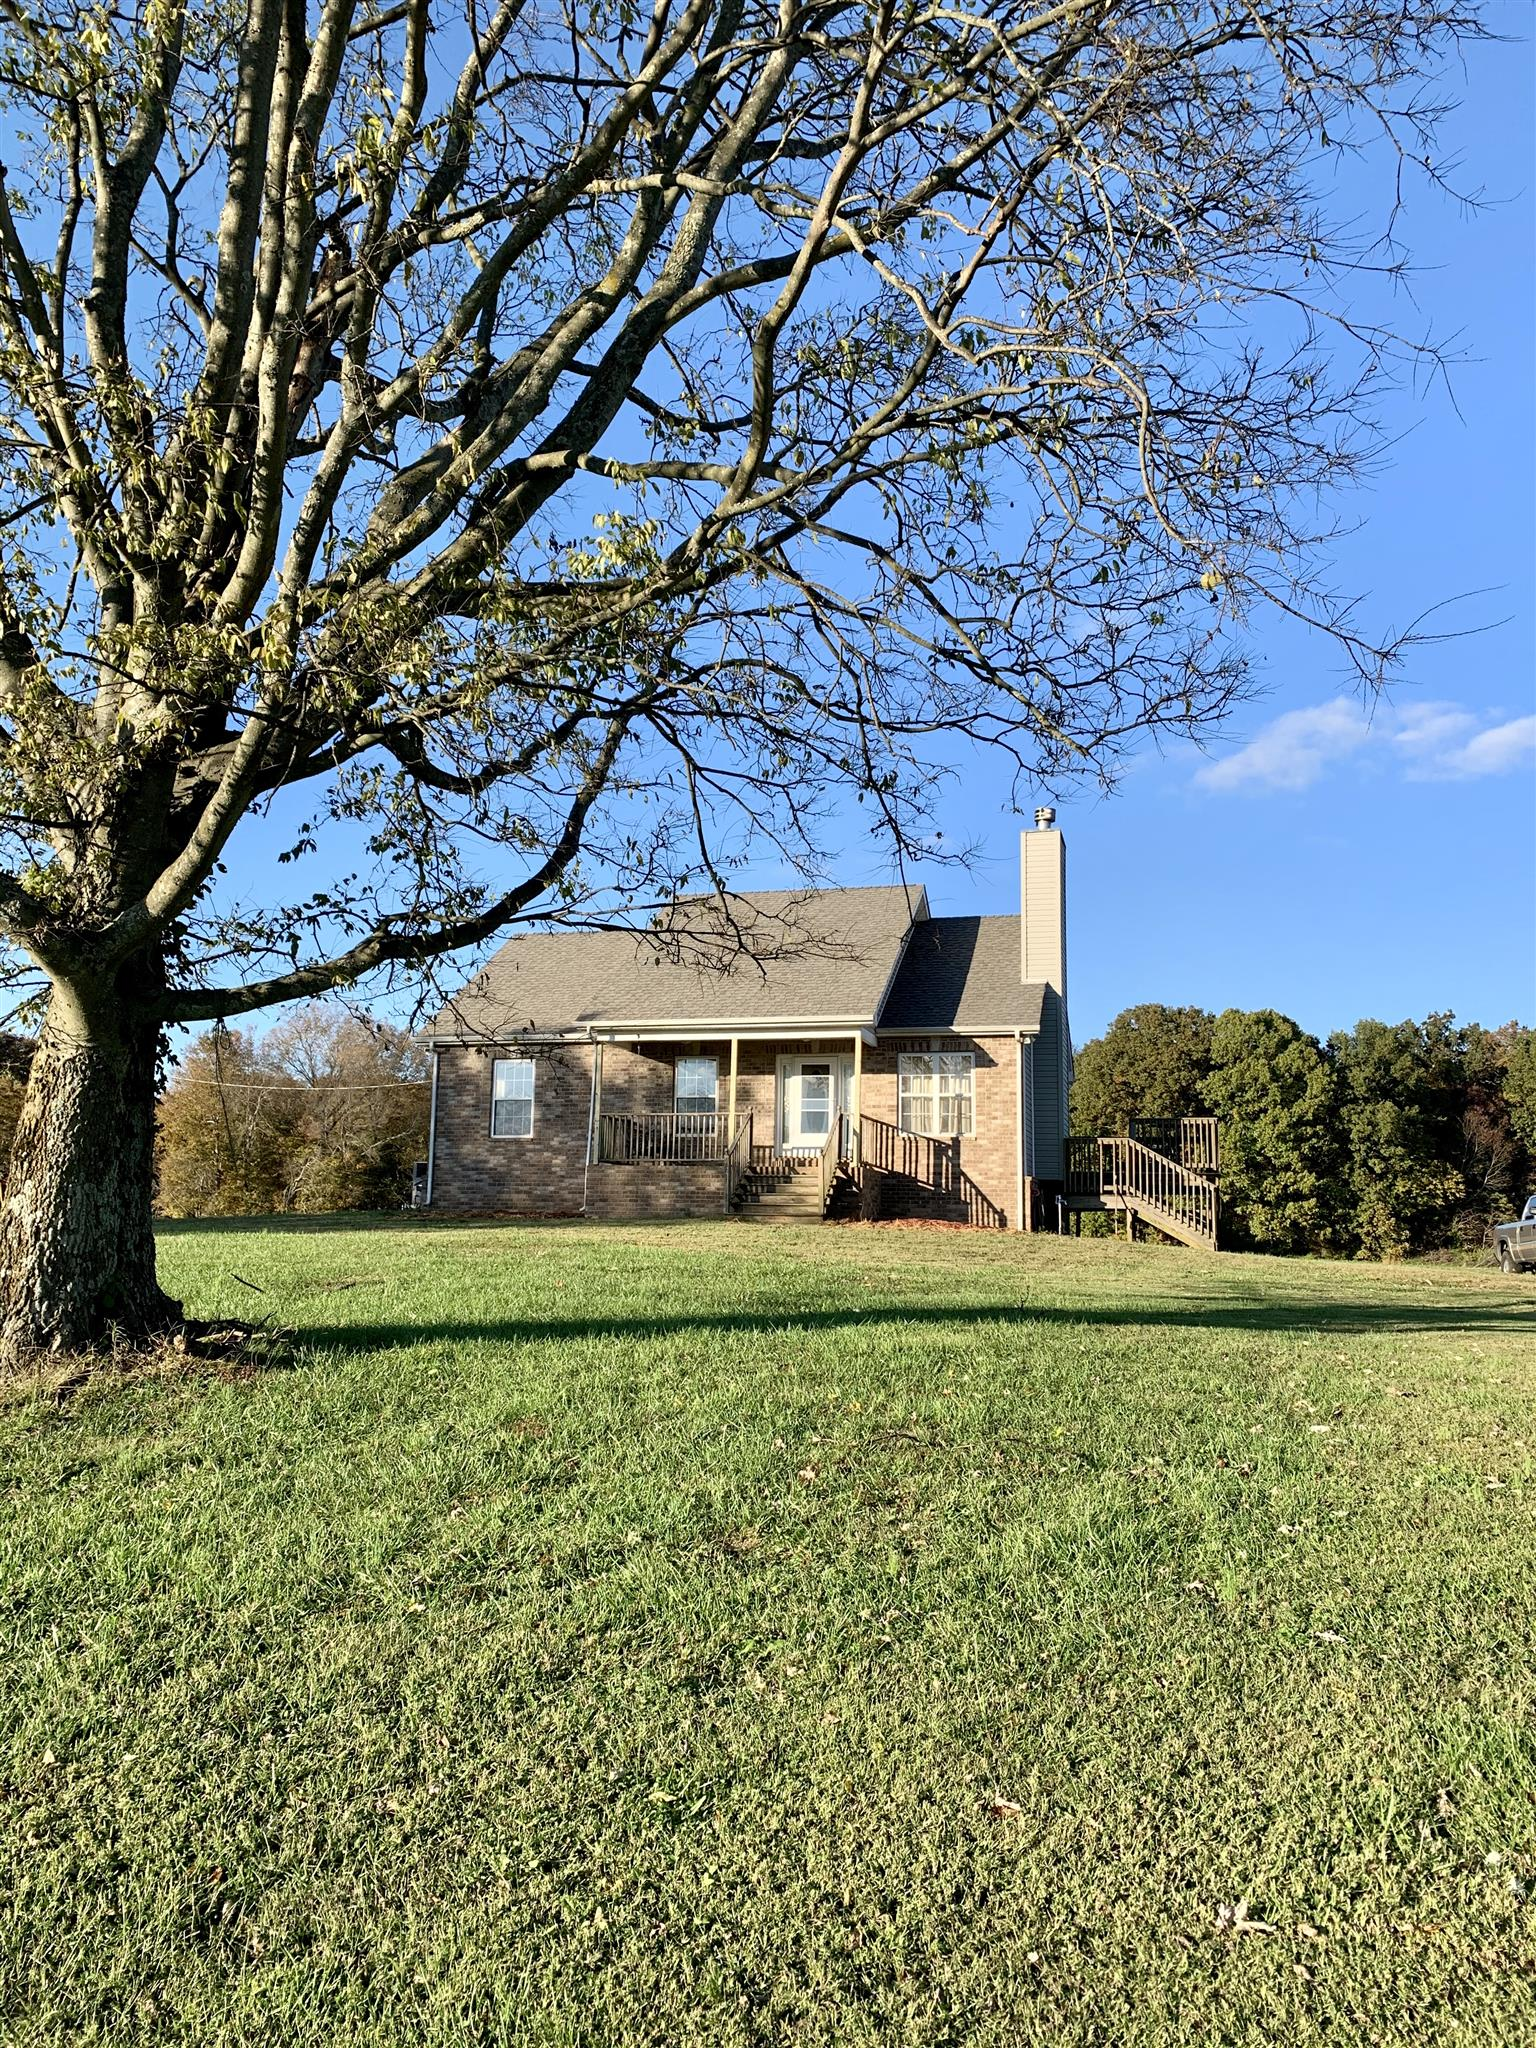 $345,000 - 5Br/3Ba -  for Sale in Na, Springfield